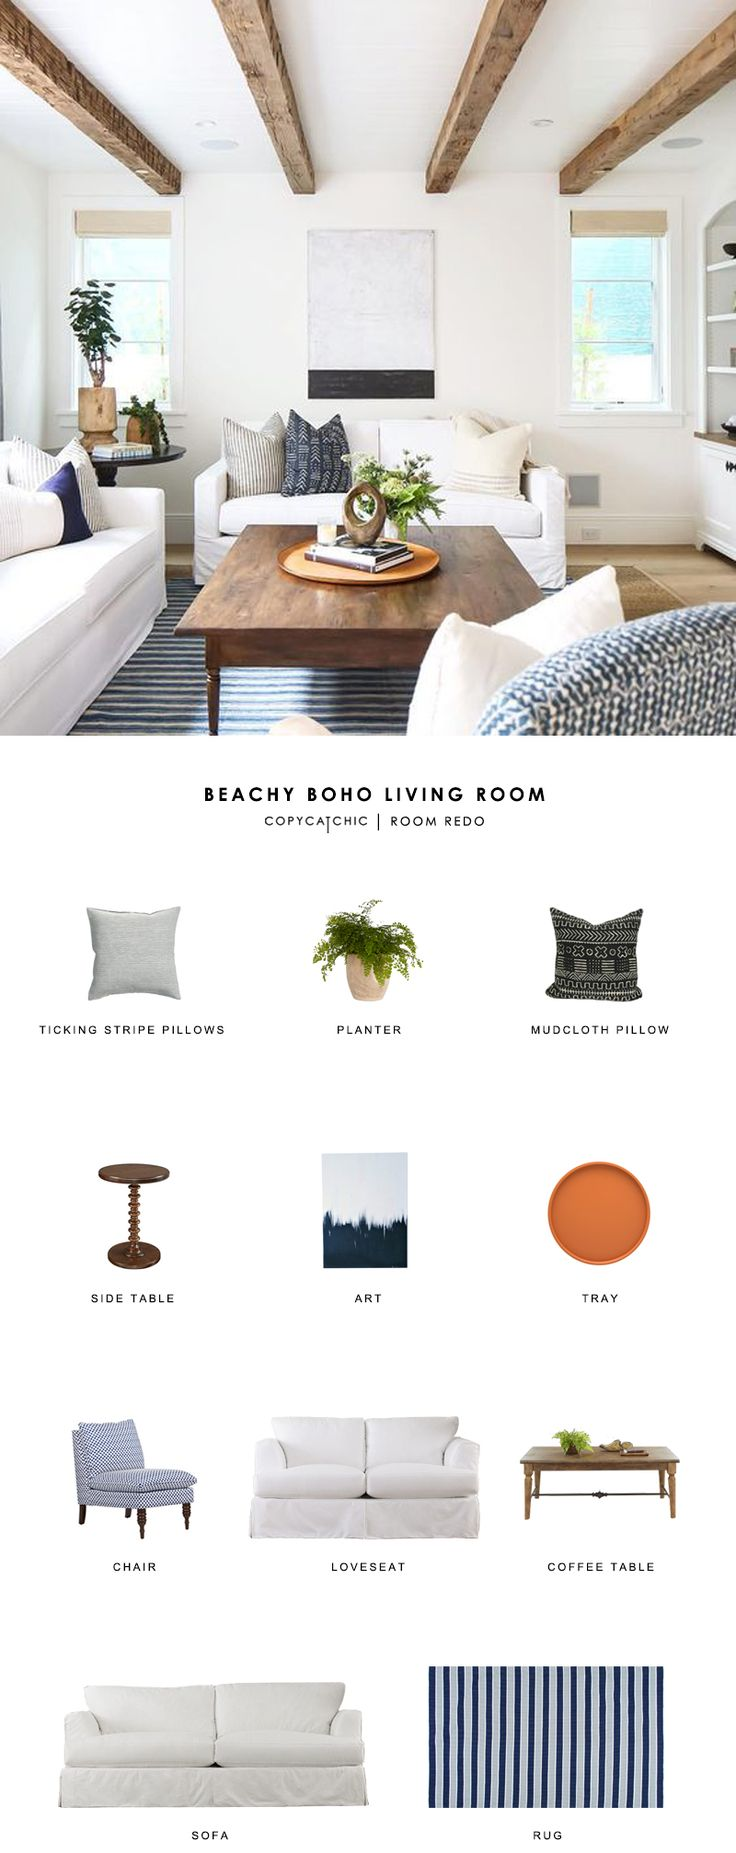 Copy Cat Chic Room Redo | Beachy Boho Living Room